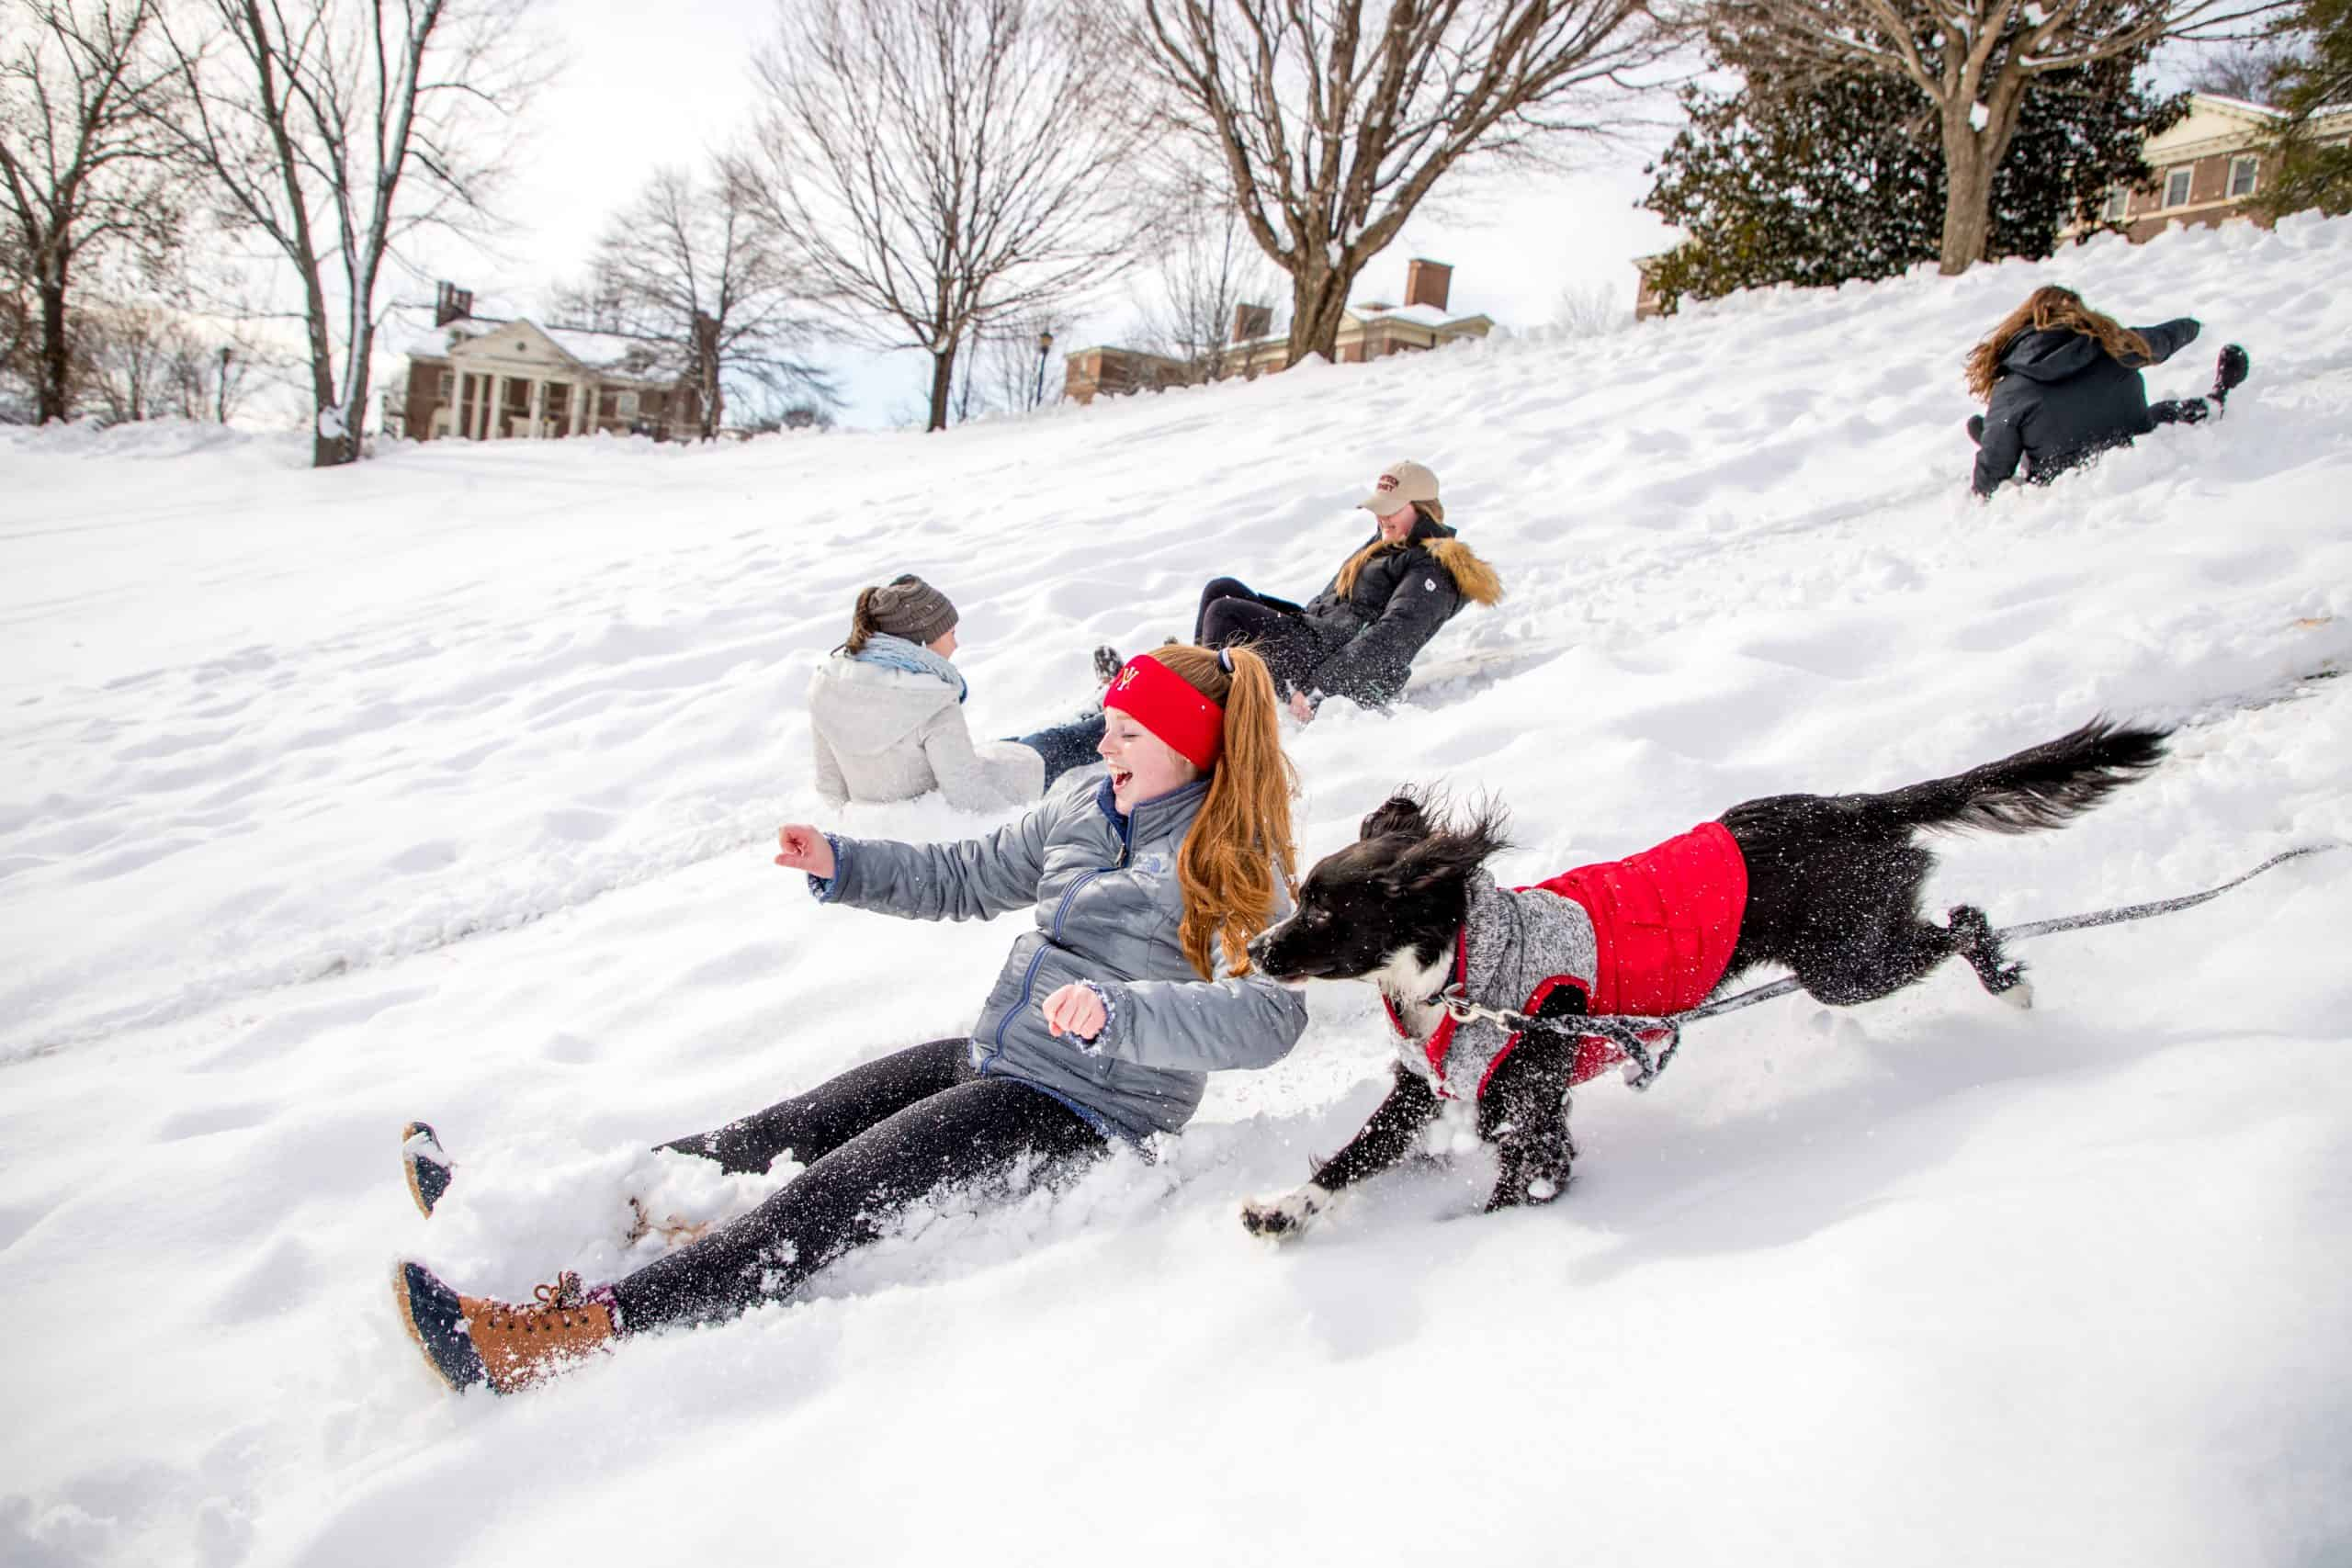 Female student sledding down hill with black dog wearing a red sweater running beside her